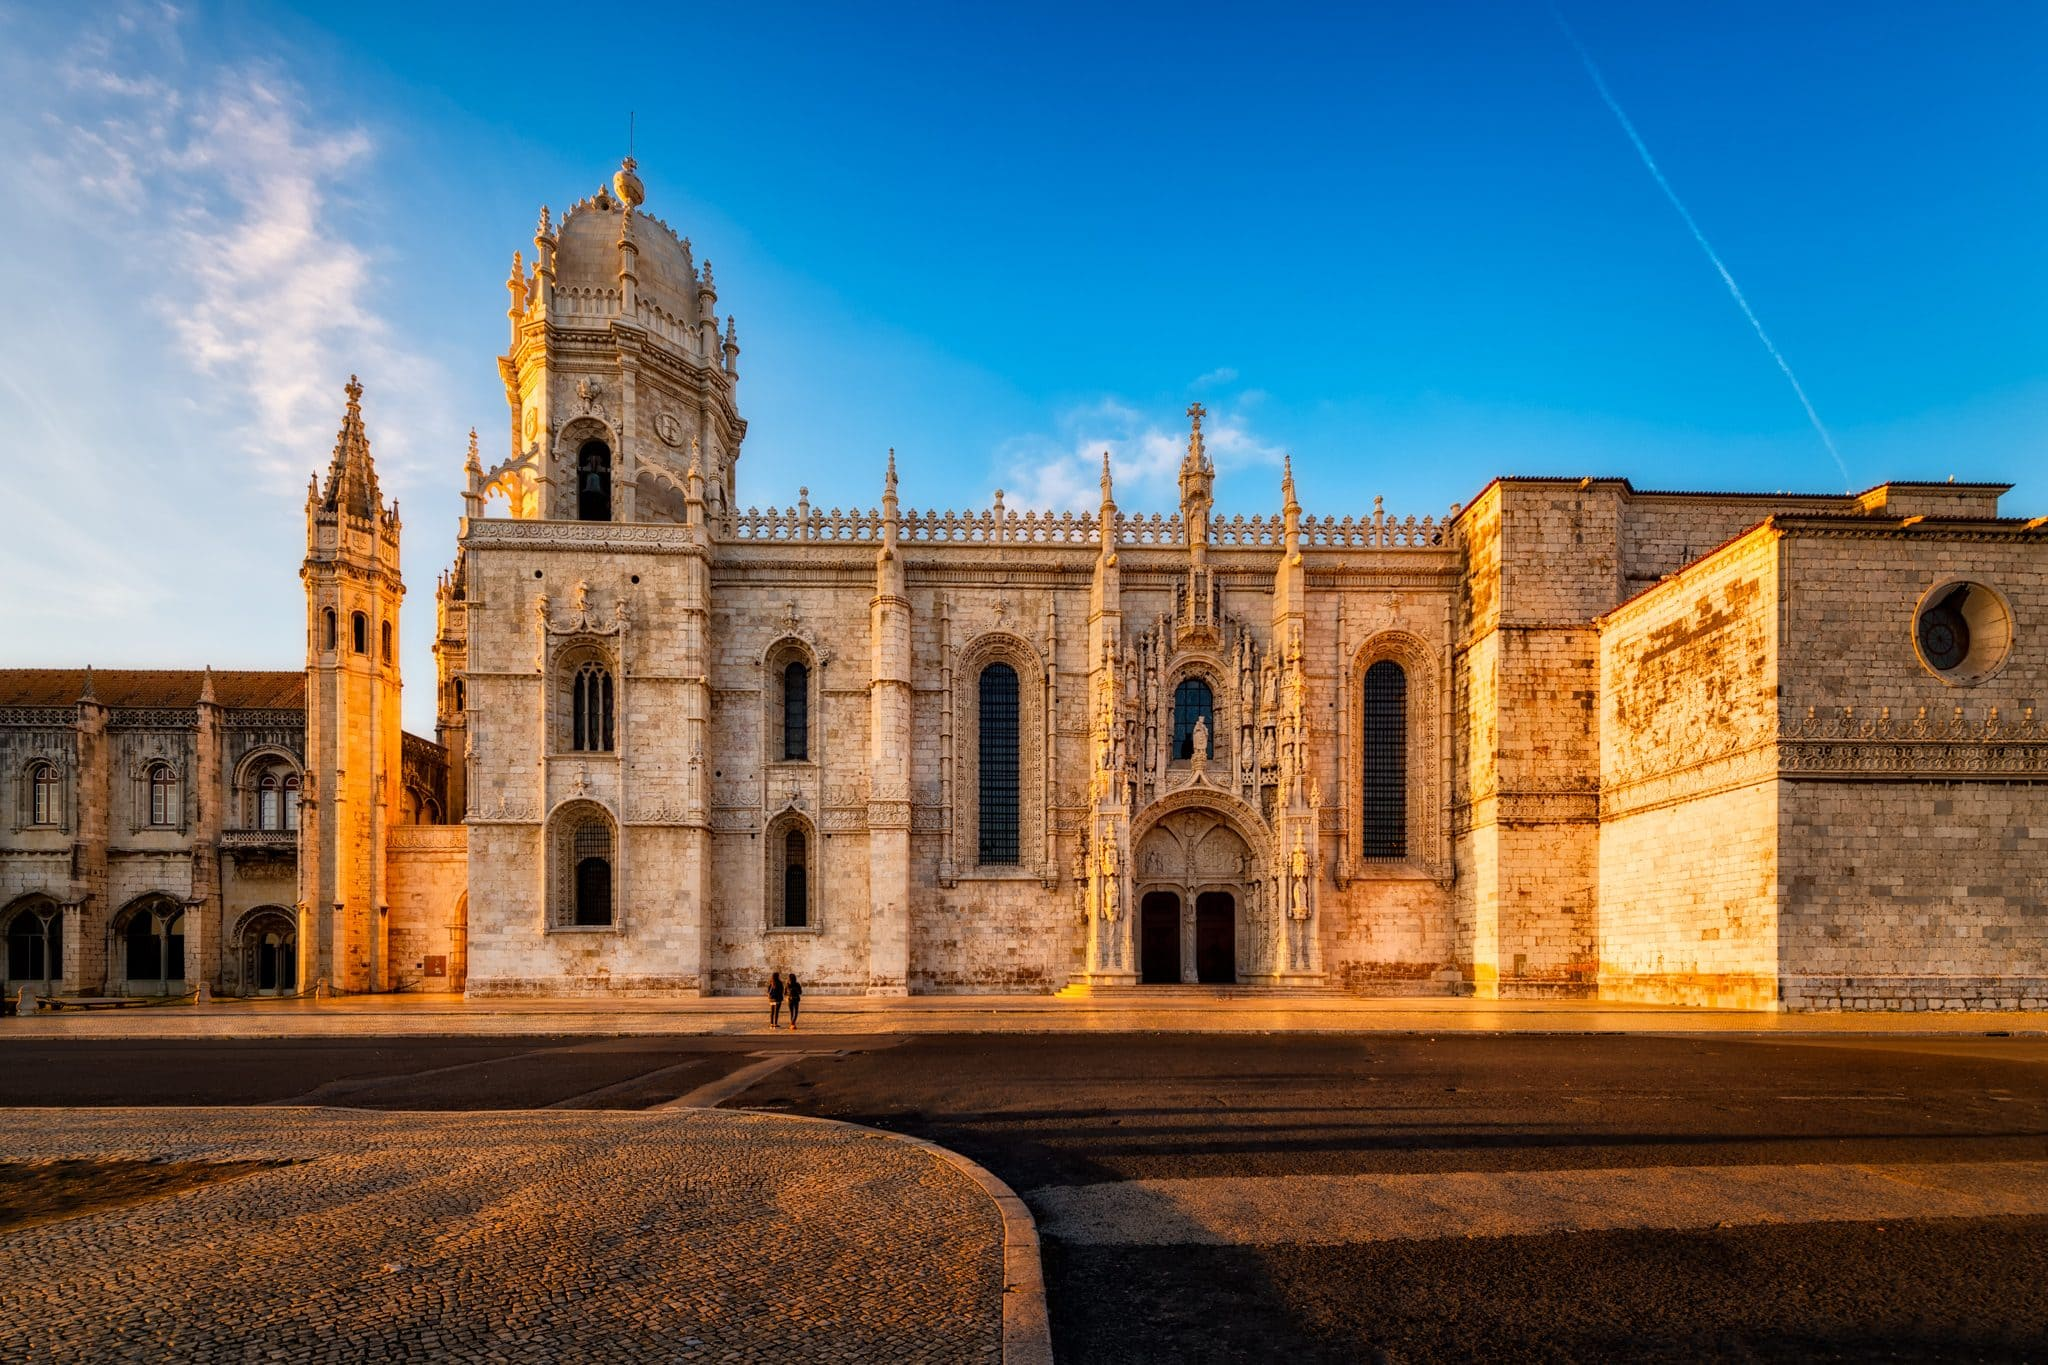 Jerónimos Monastery in Belem district of Lisbon.